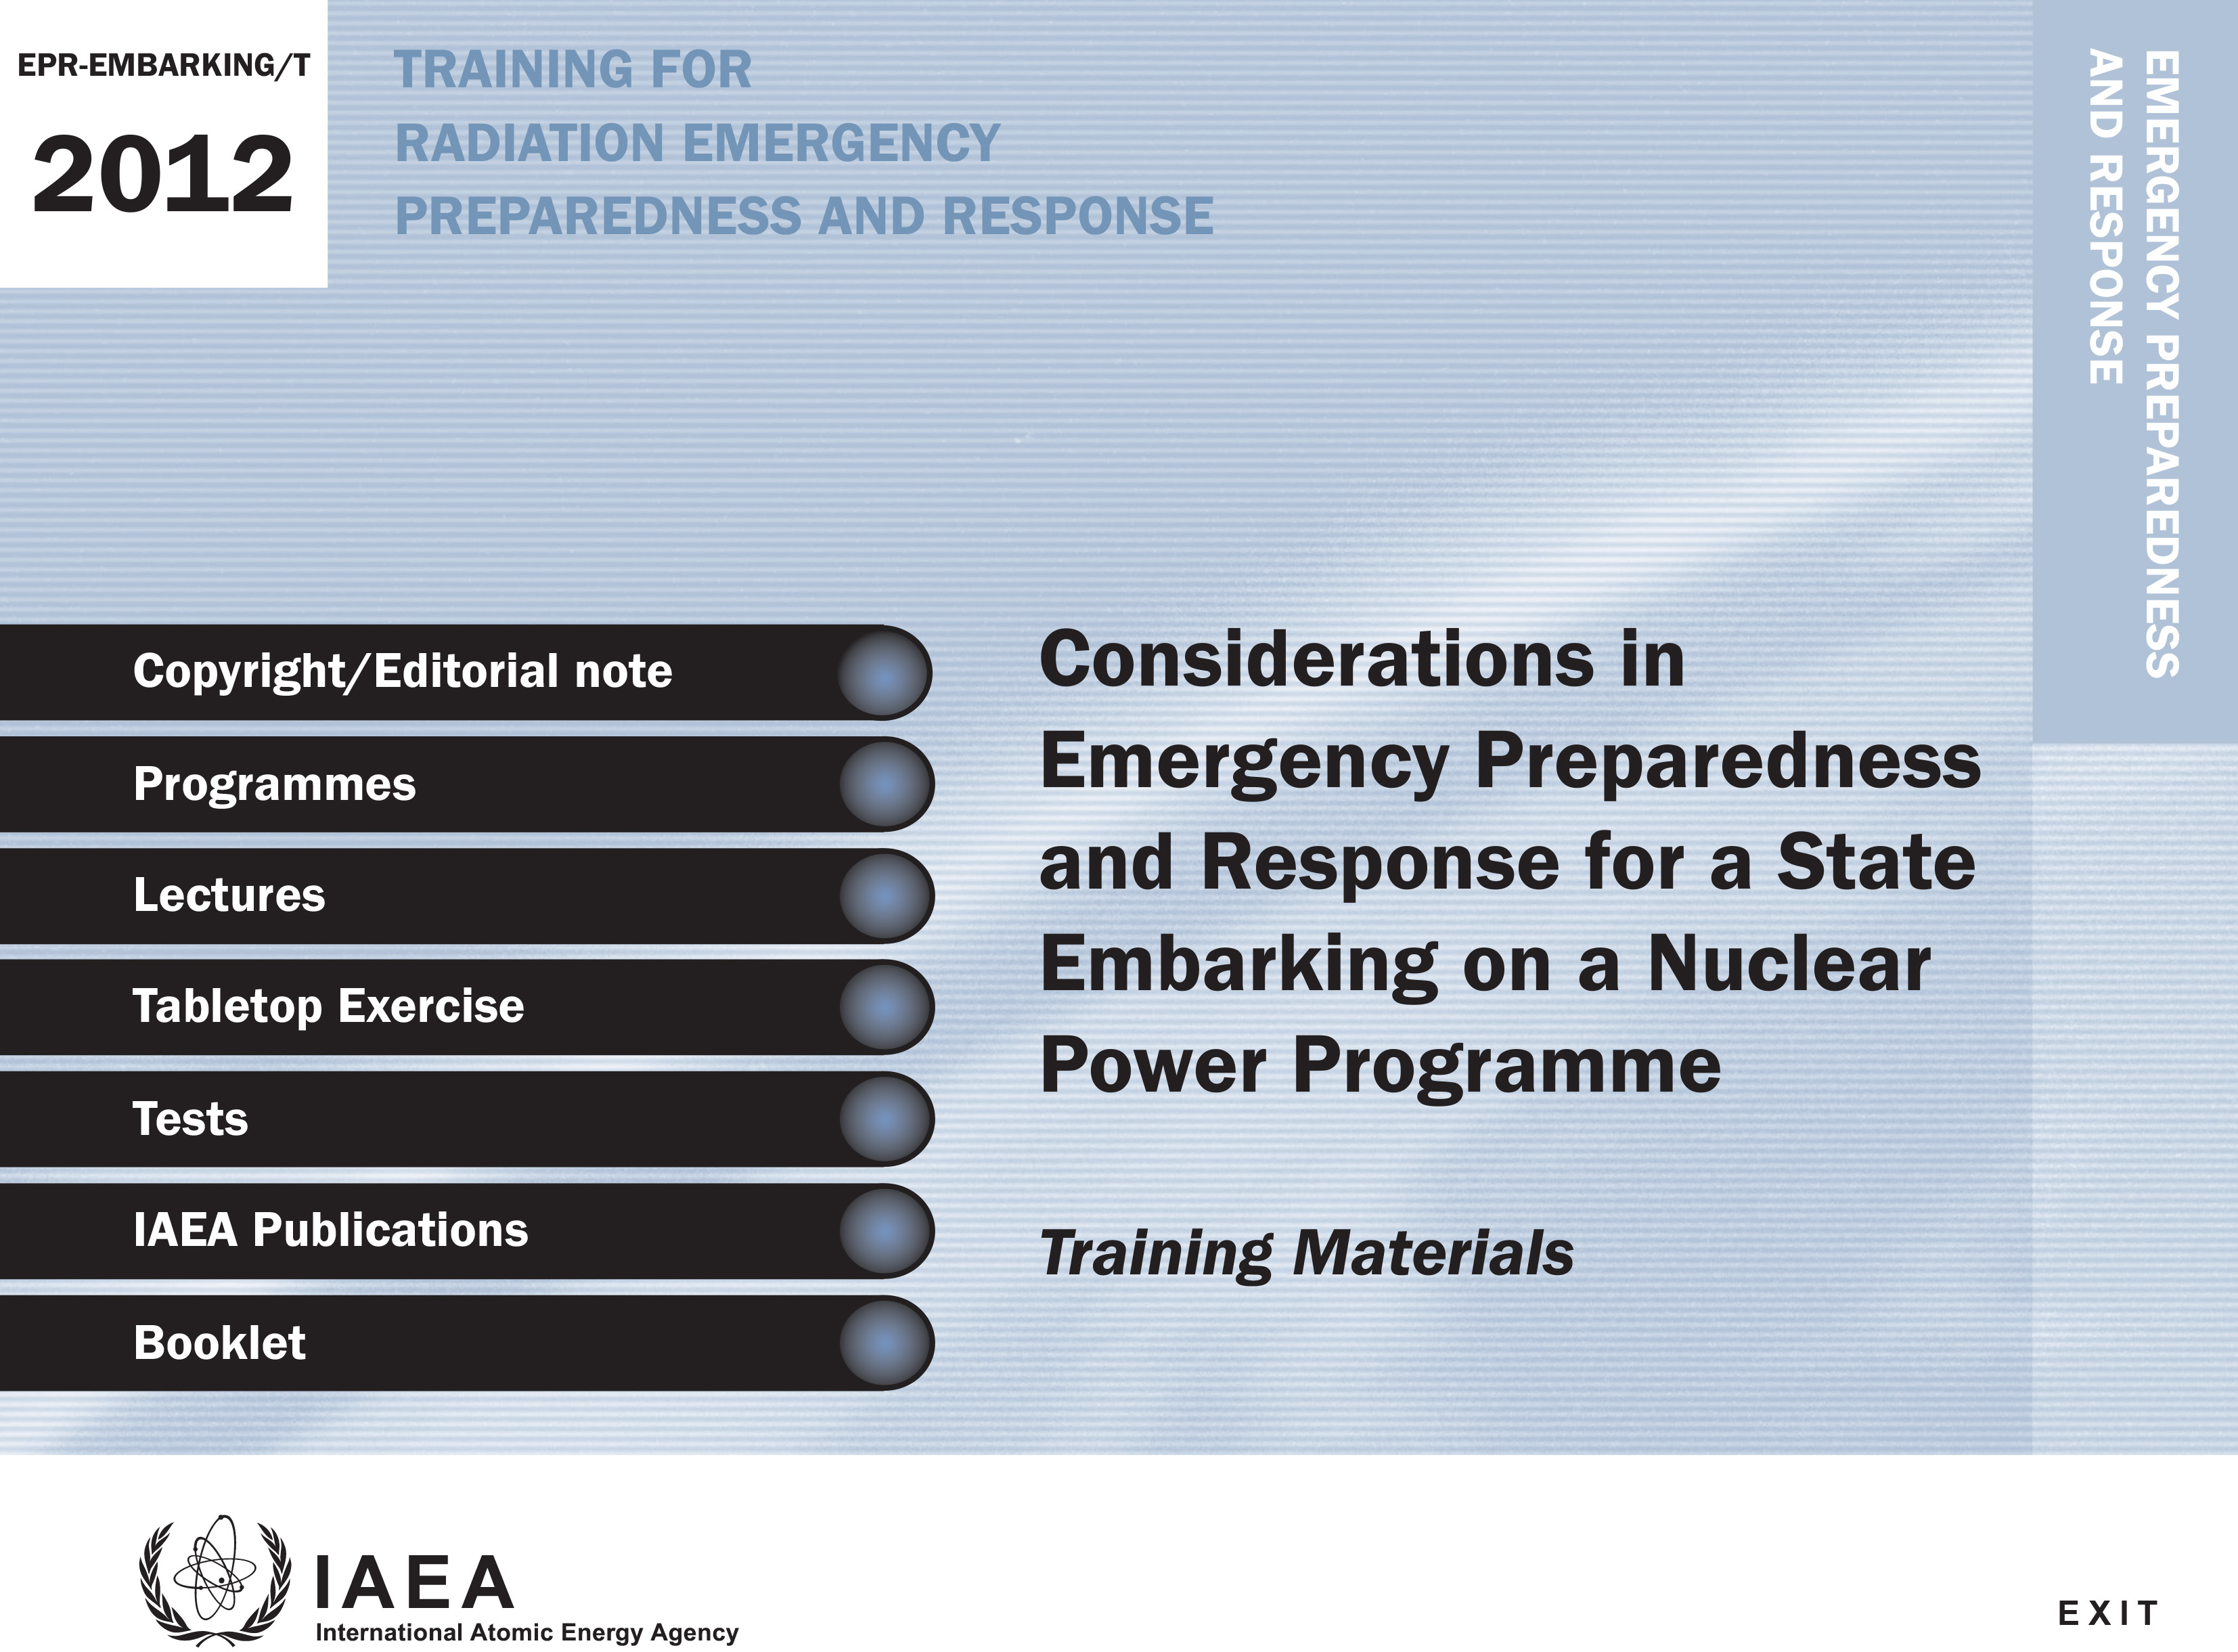 Considerations in Emergency Preparedness and Response for a